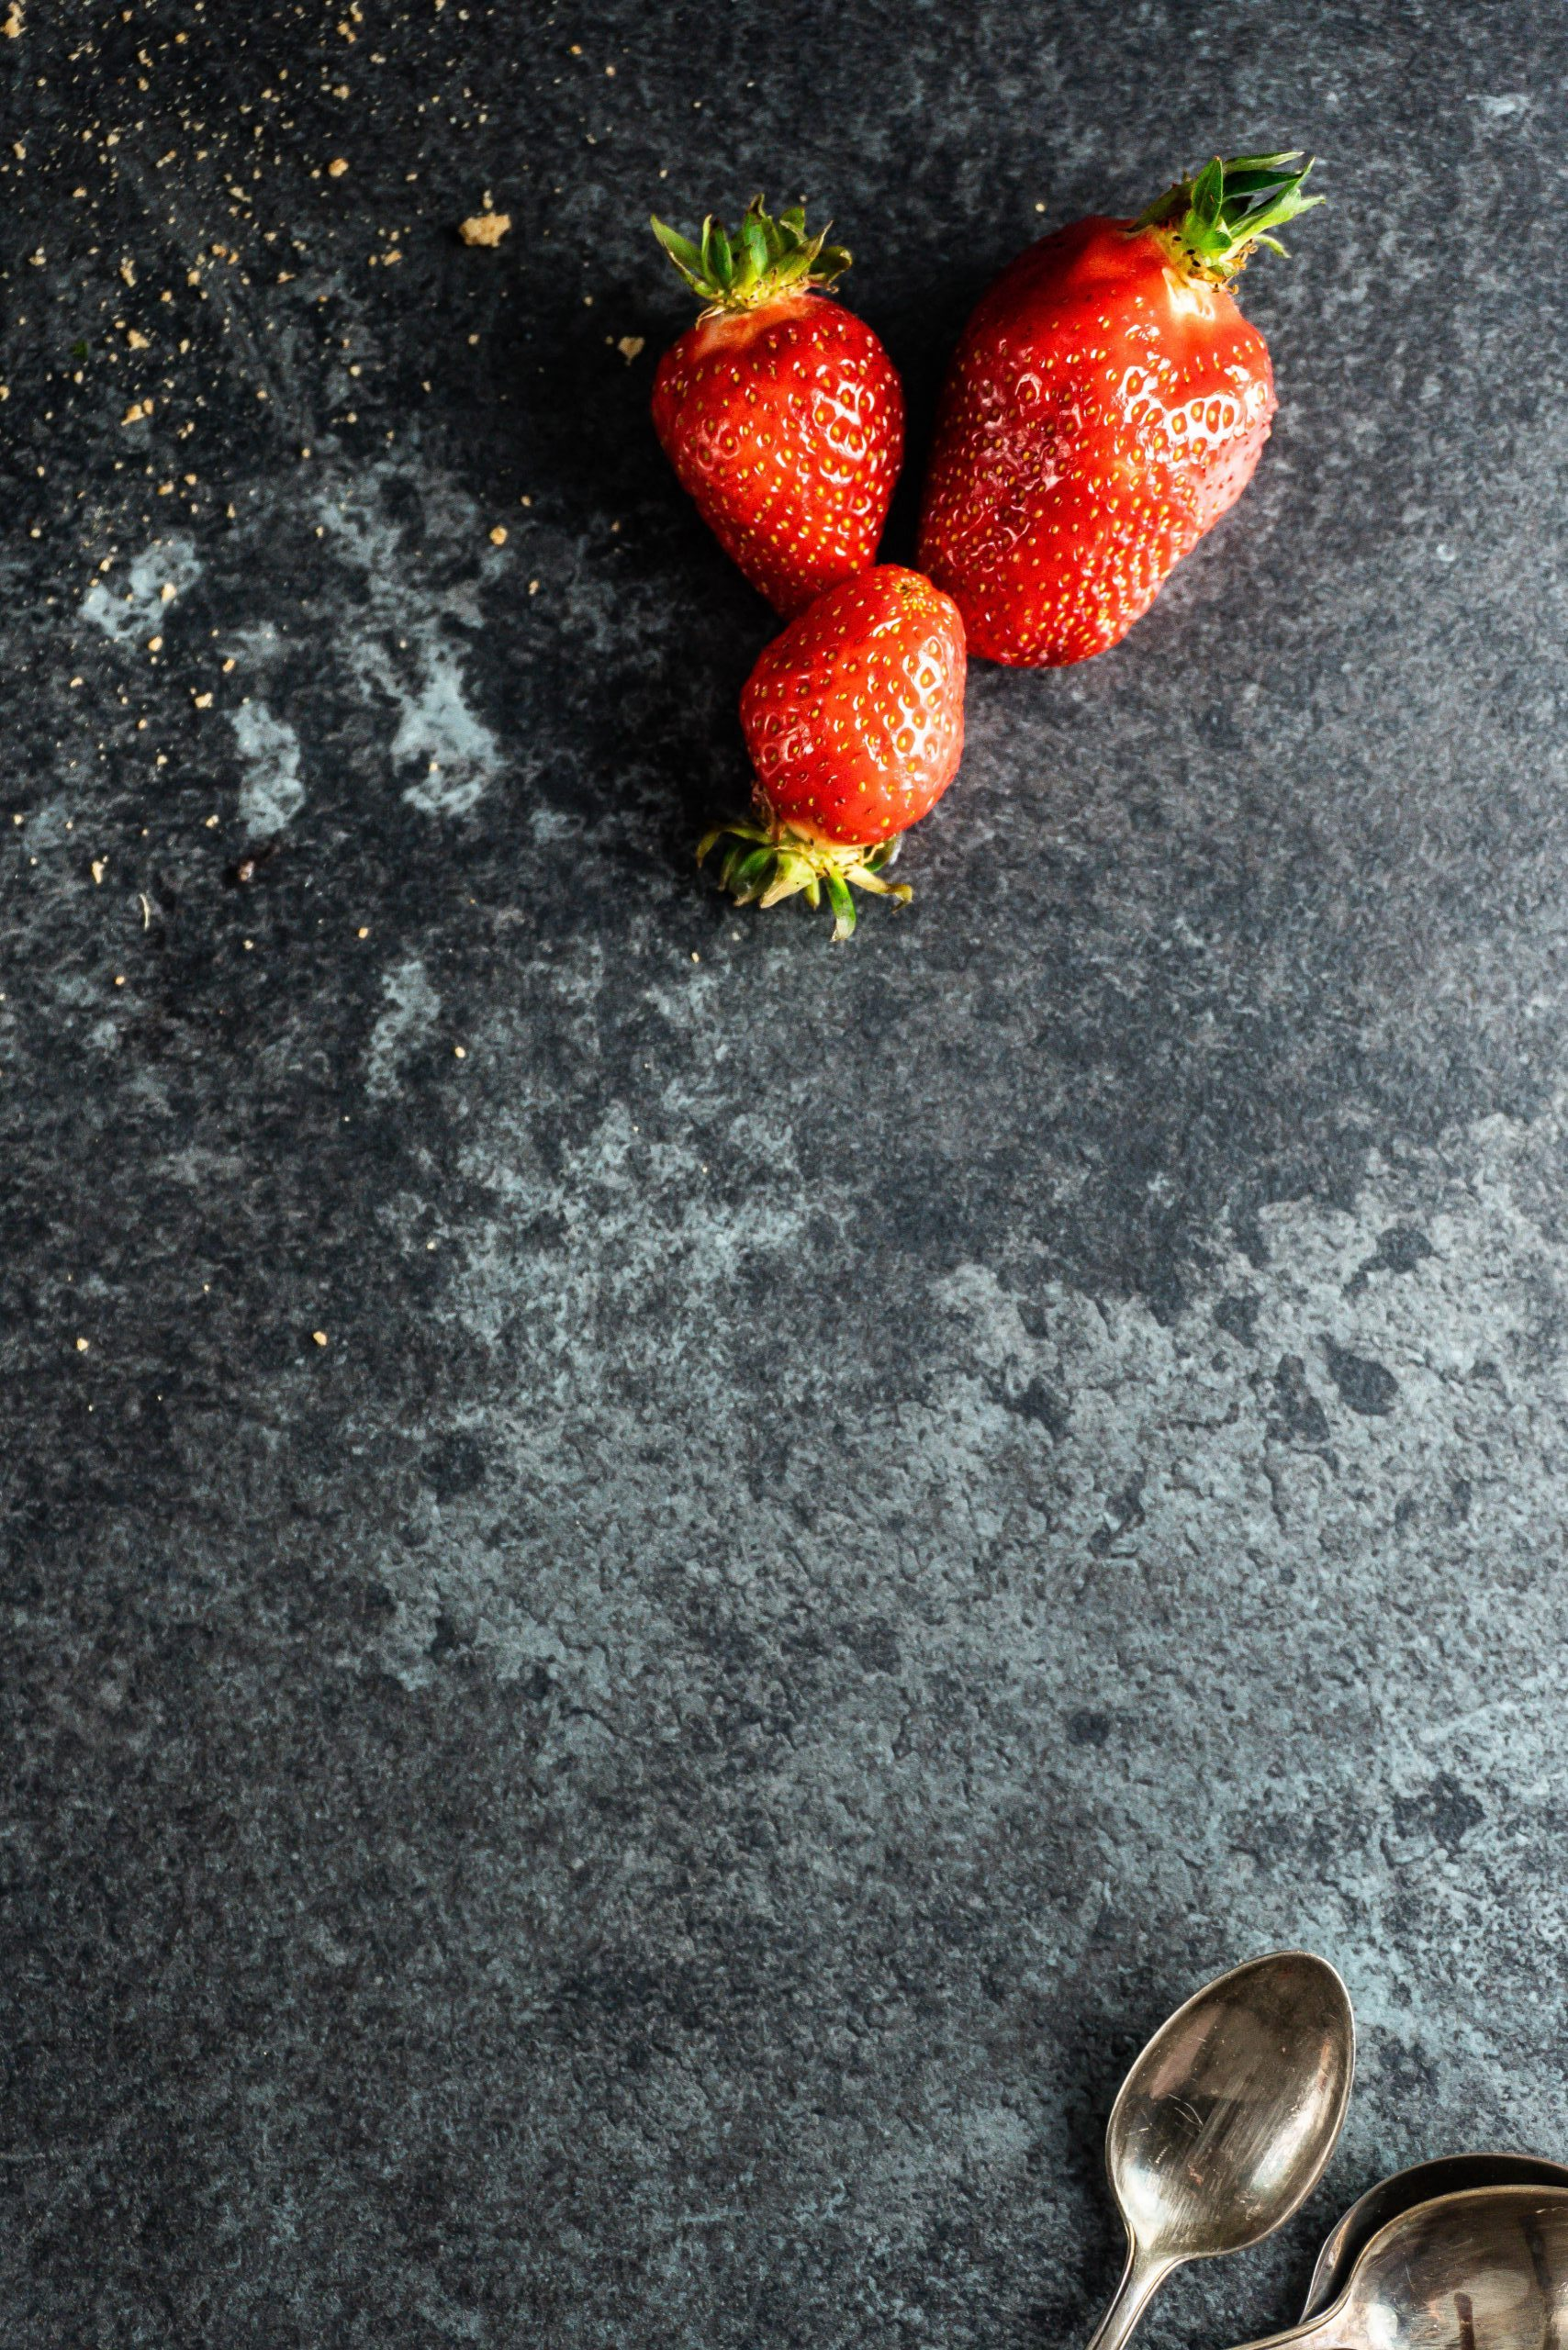 Strawberries photographed on a dark backround with dessert spoons sticking out in the corner